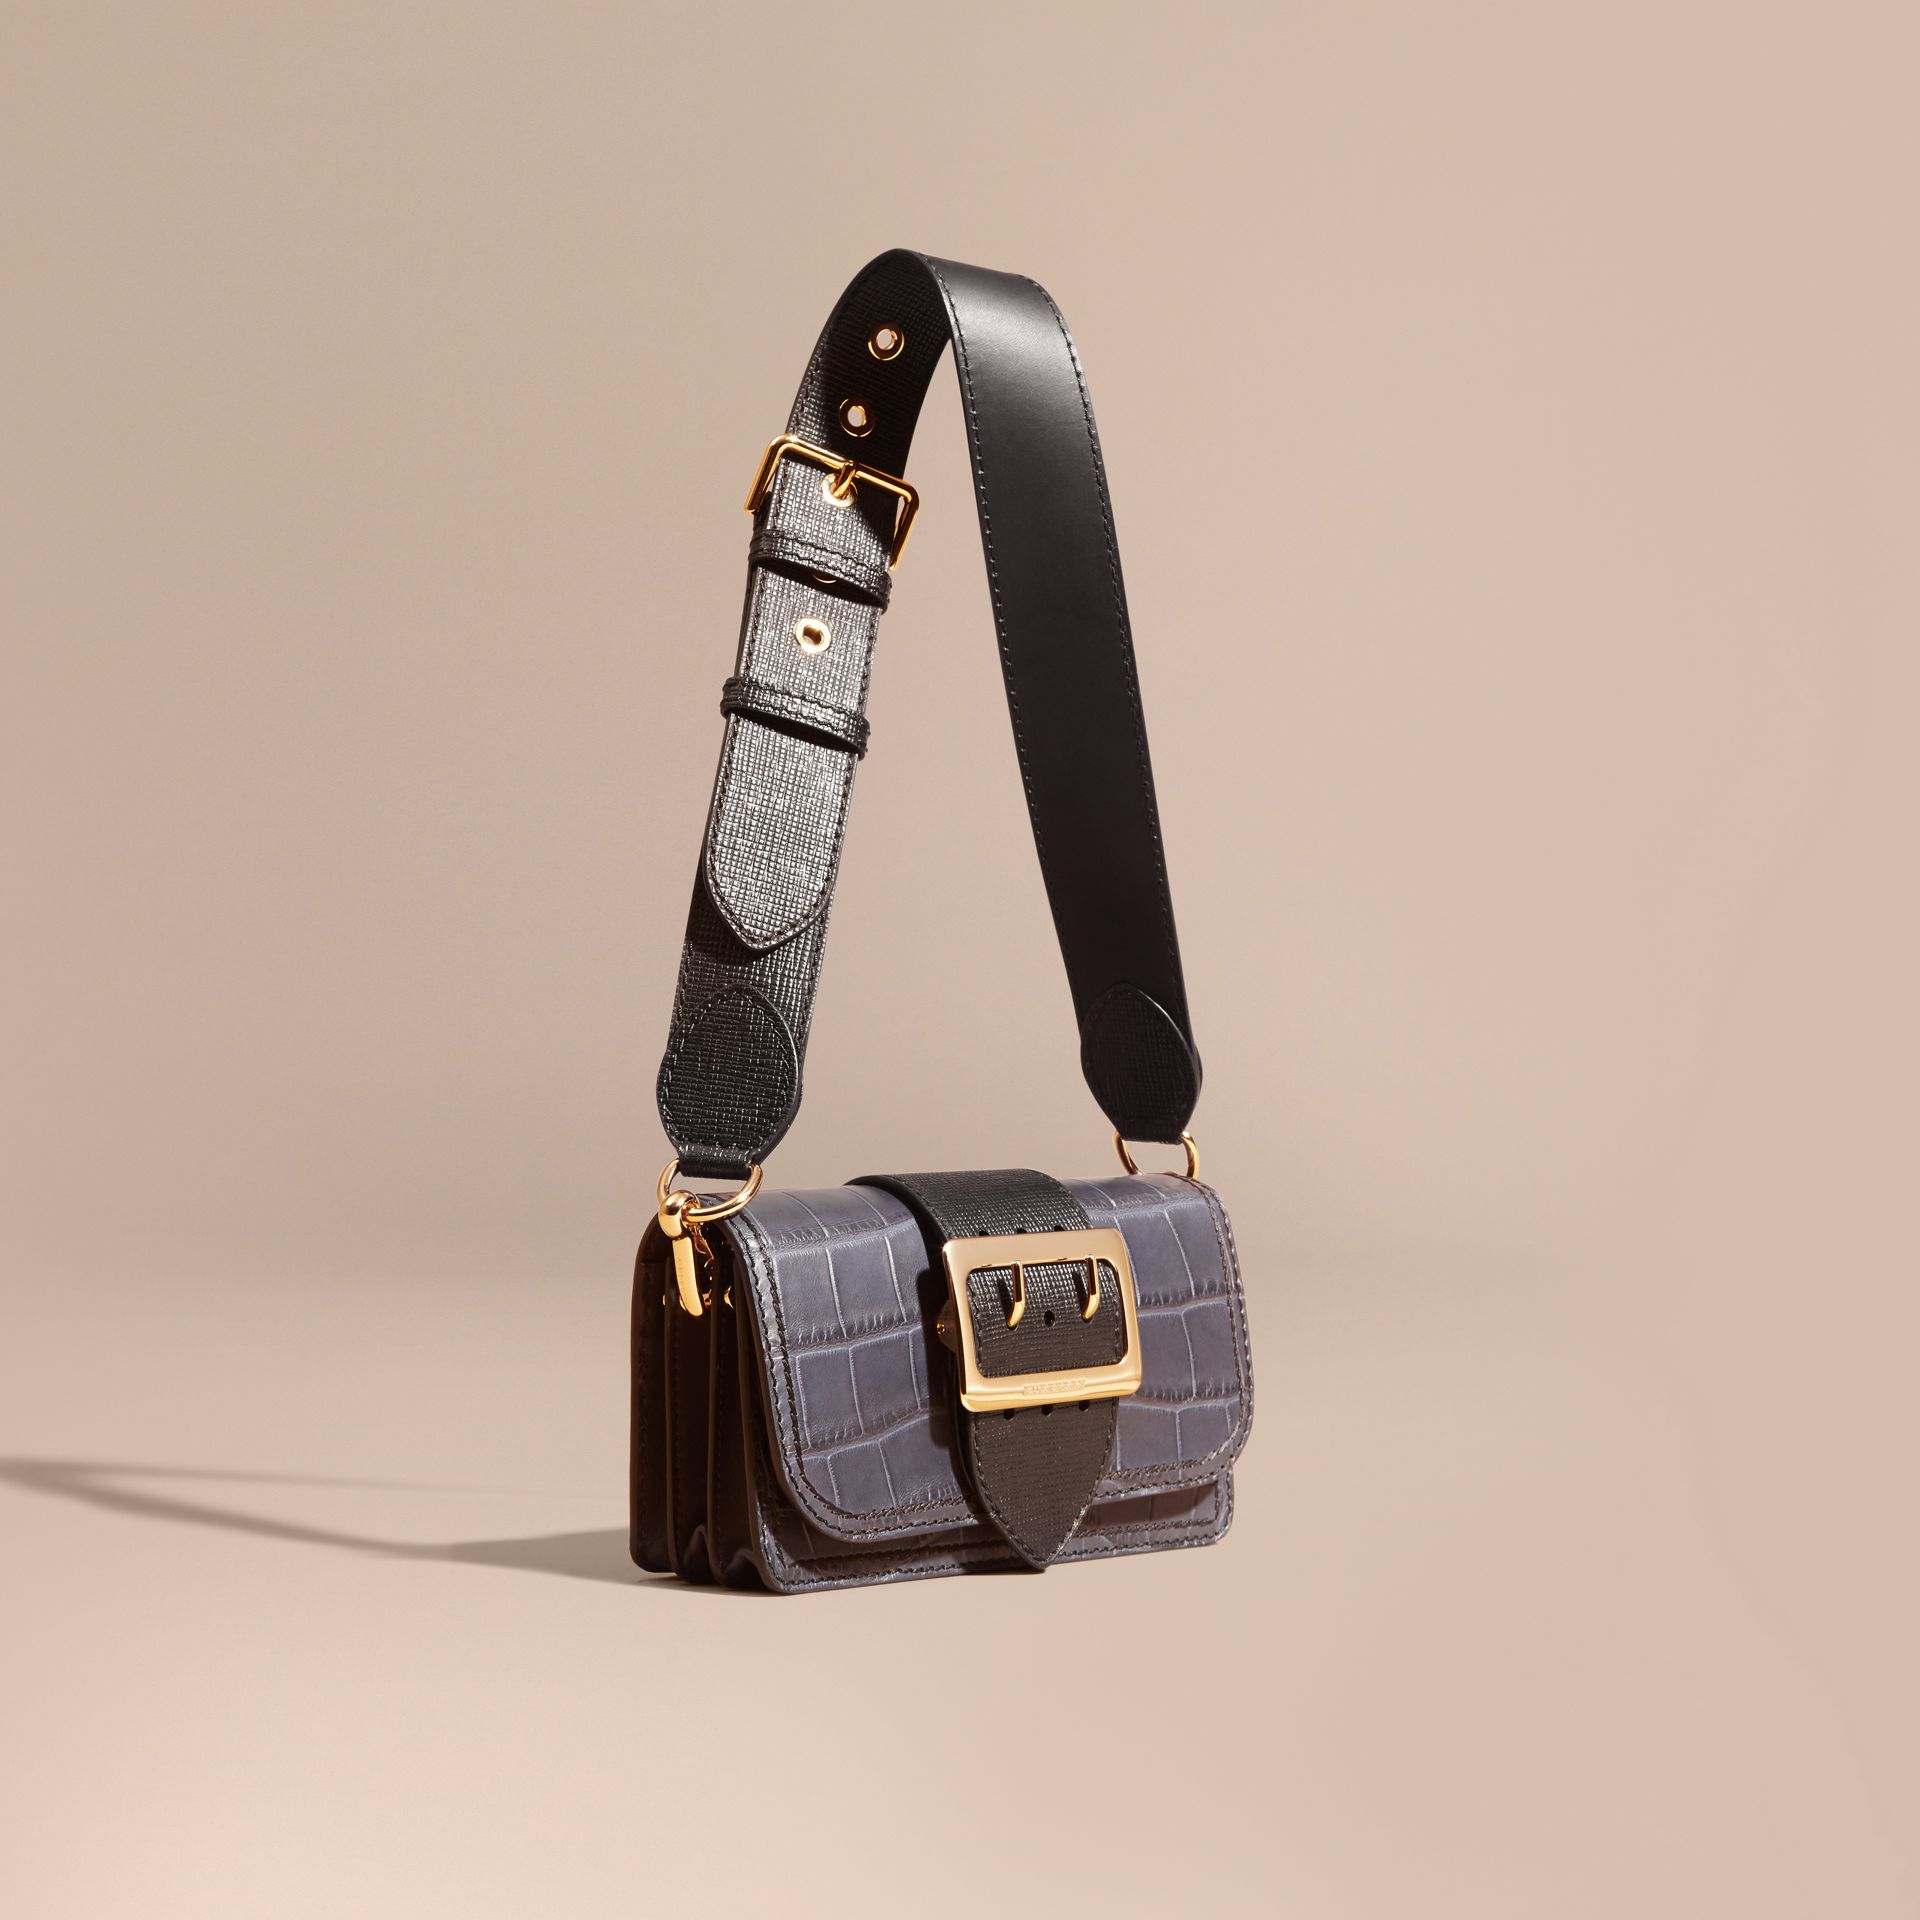 Petit sac The Buckle en alligator et cuir (Marine/noir) - Femme | Burberry - photo de la galerie 1